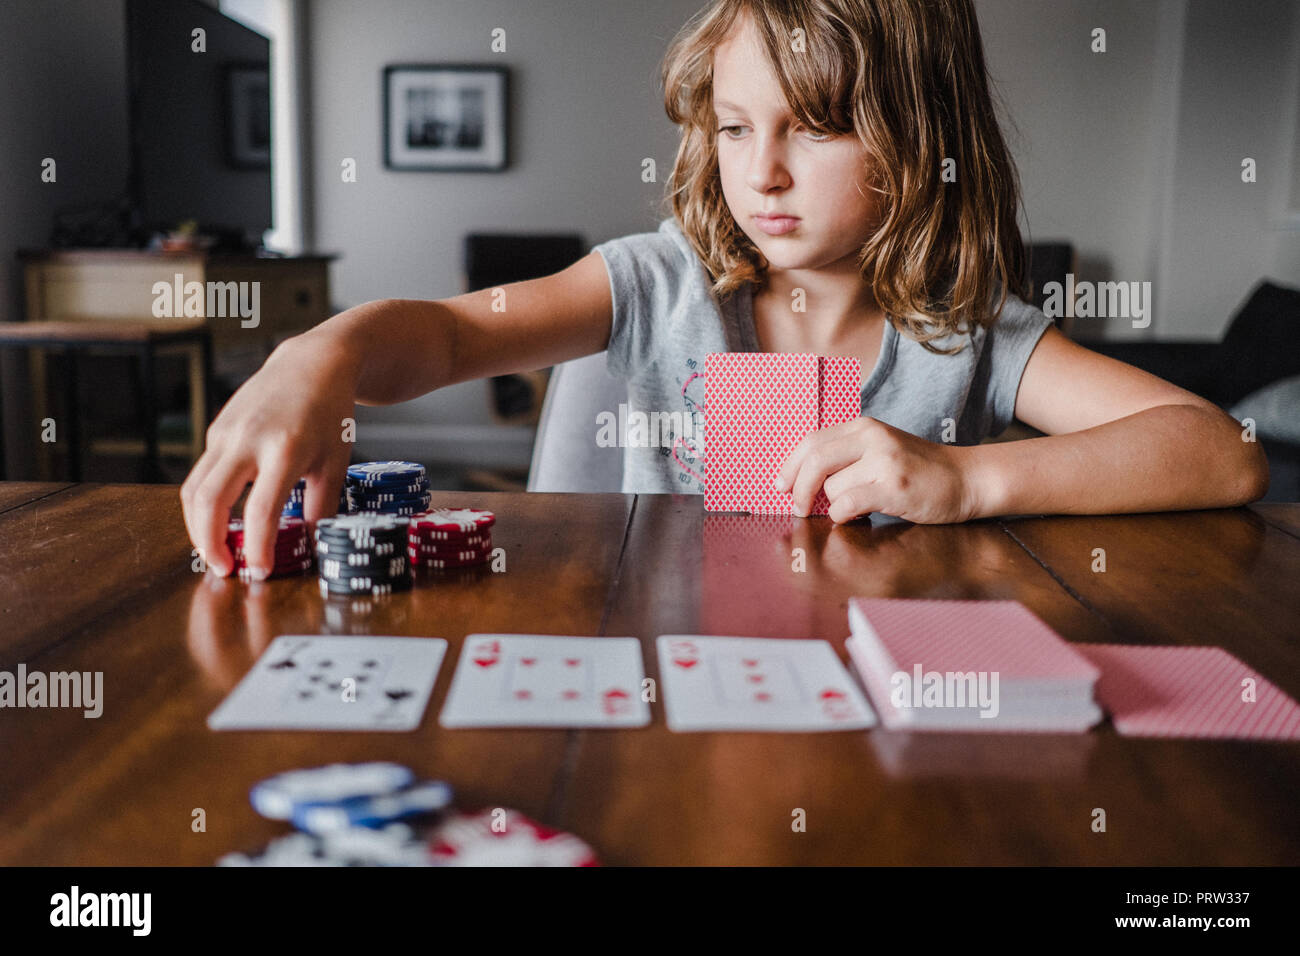 Cartes de jeu de fille à table, l'empilement des jetons Photo Stock